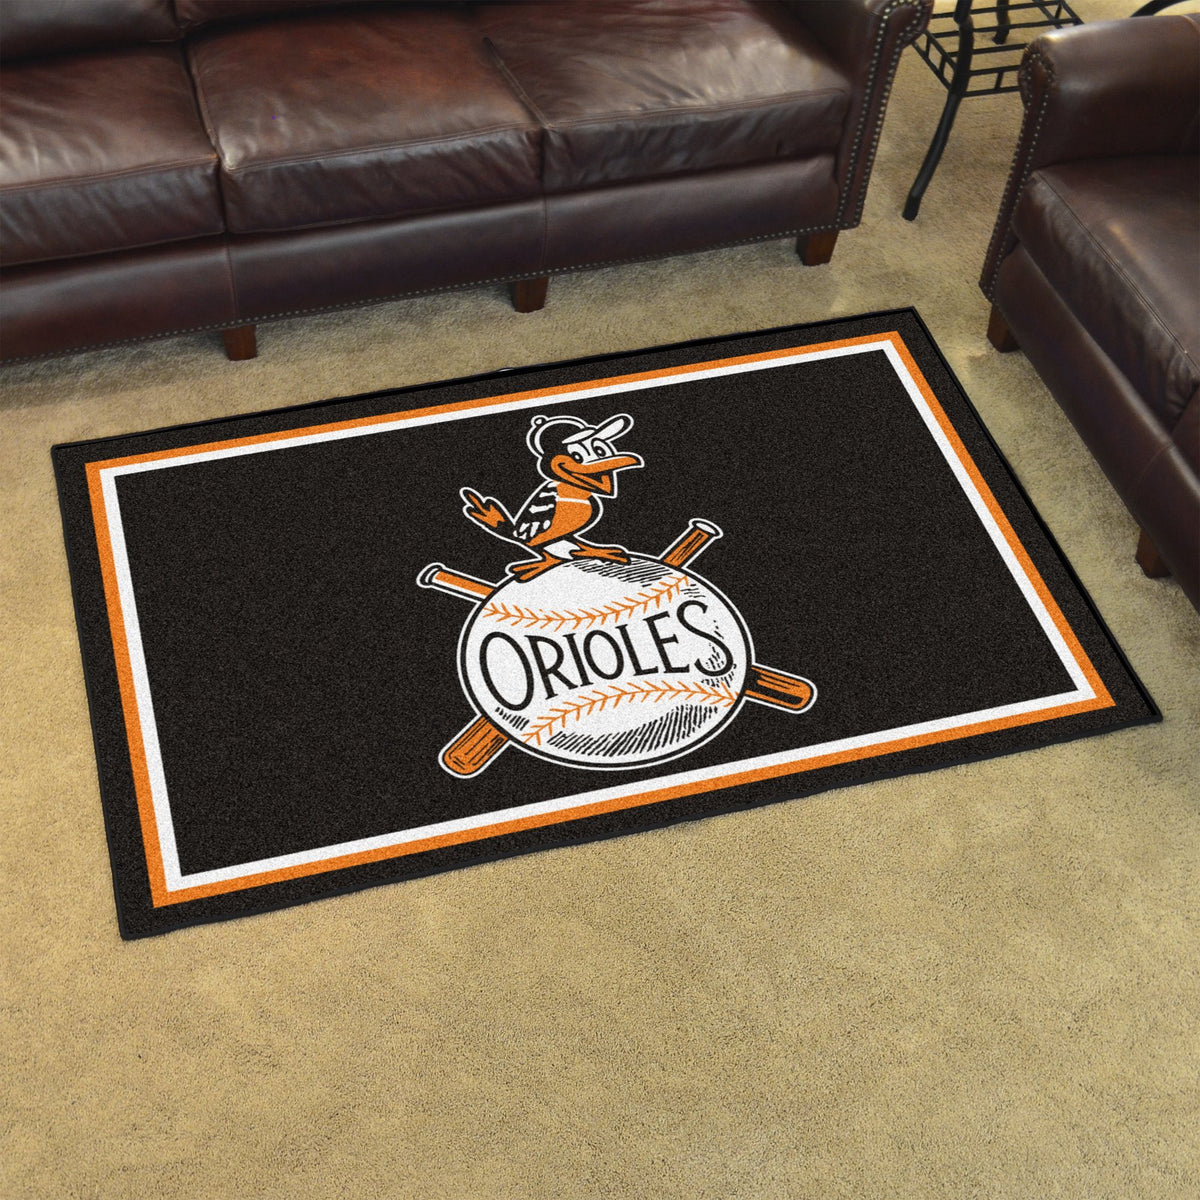 MLB Retro - 4' x 6' Rug MLB Retro Mats, Plush Rugs, 4x6 Rug, MLB, Home Fan Mats Baltimore Orioles 2